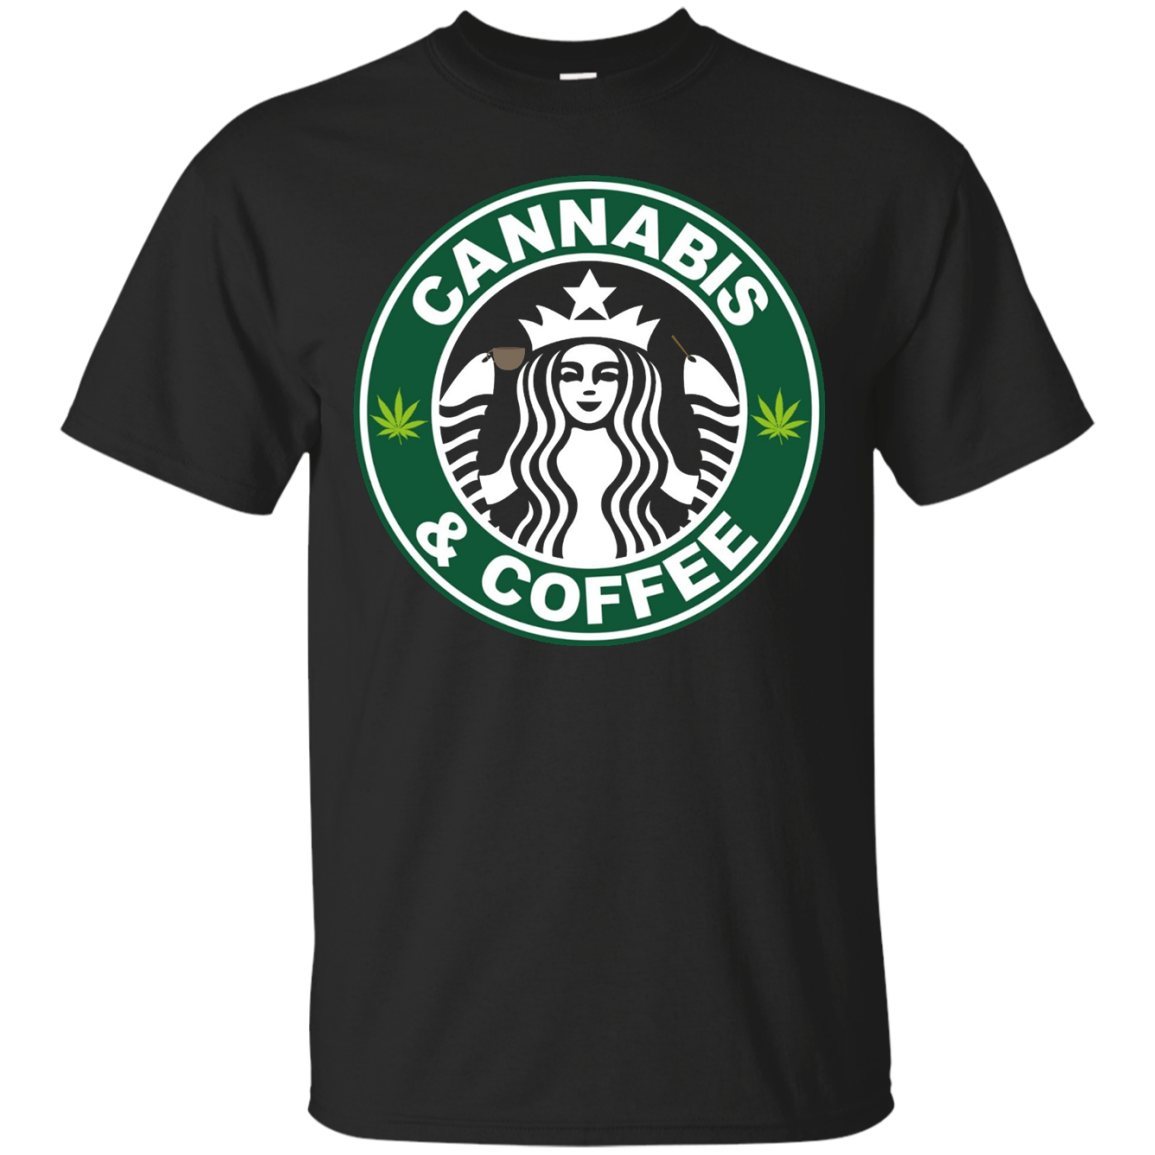 Cannabis and Coffee shirt - Cannabis Coffee